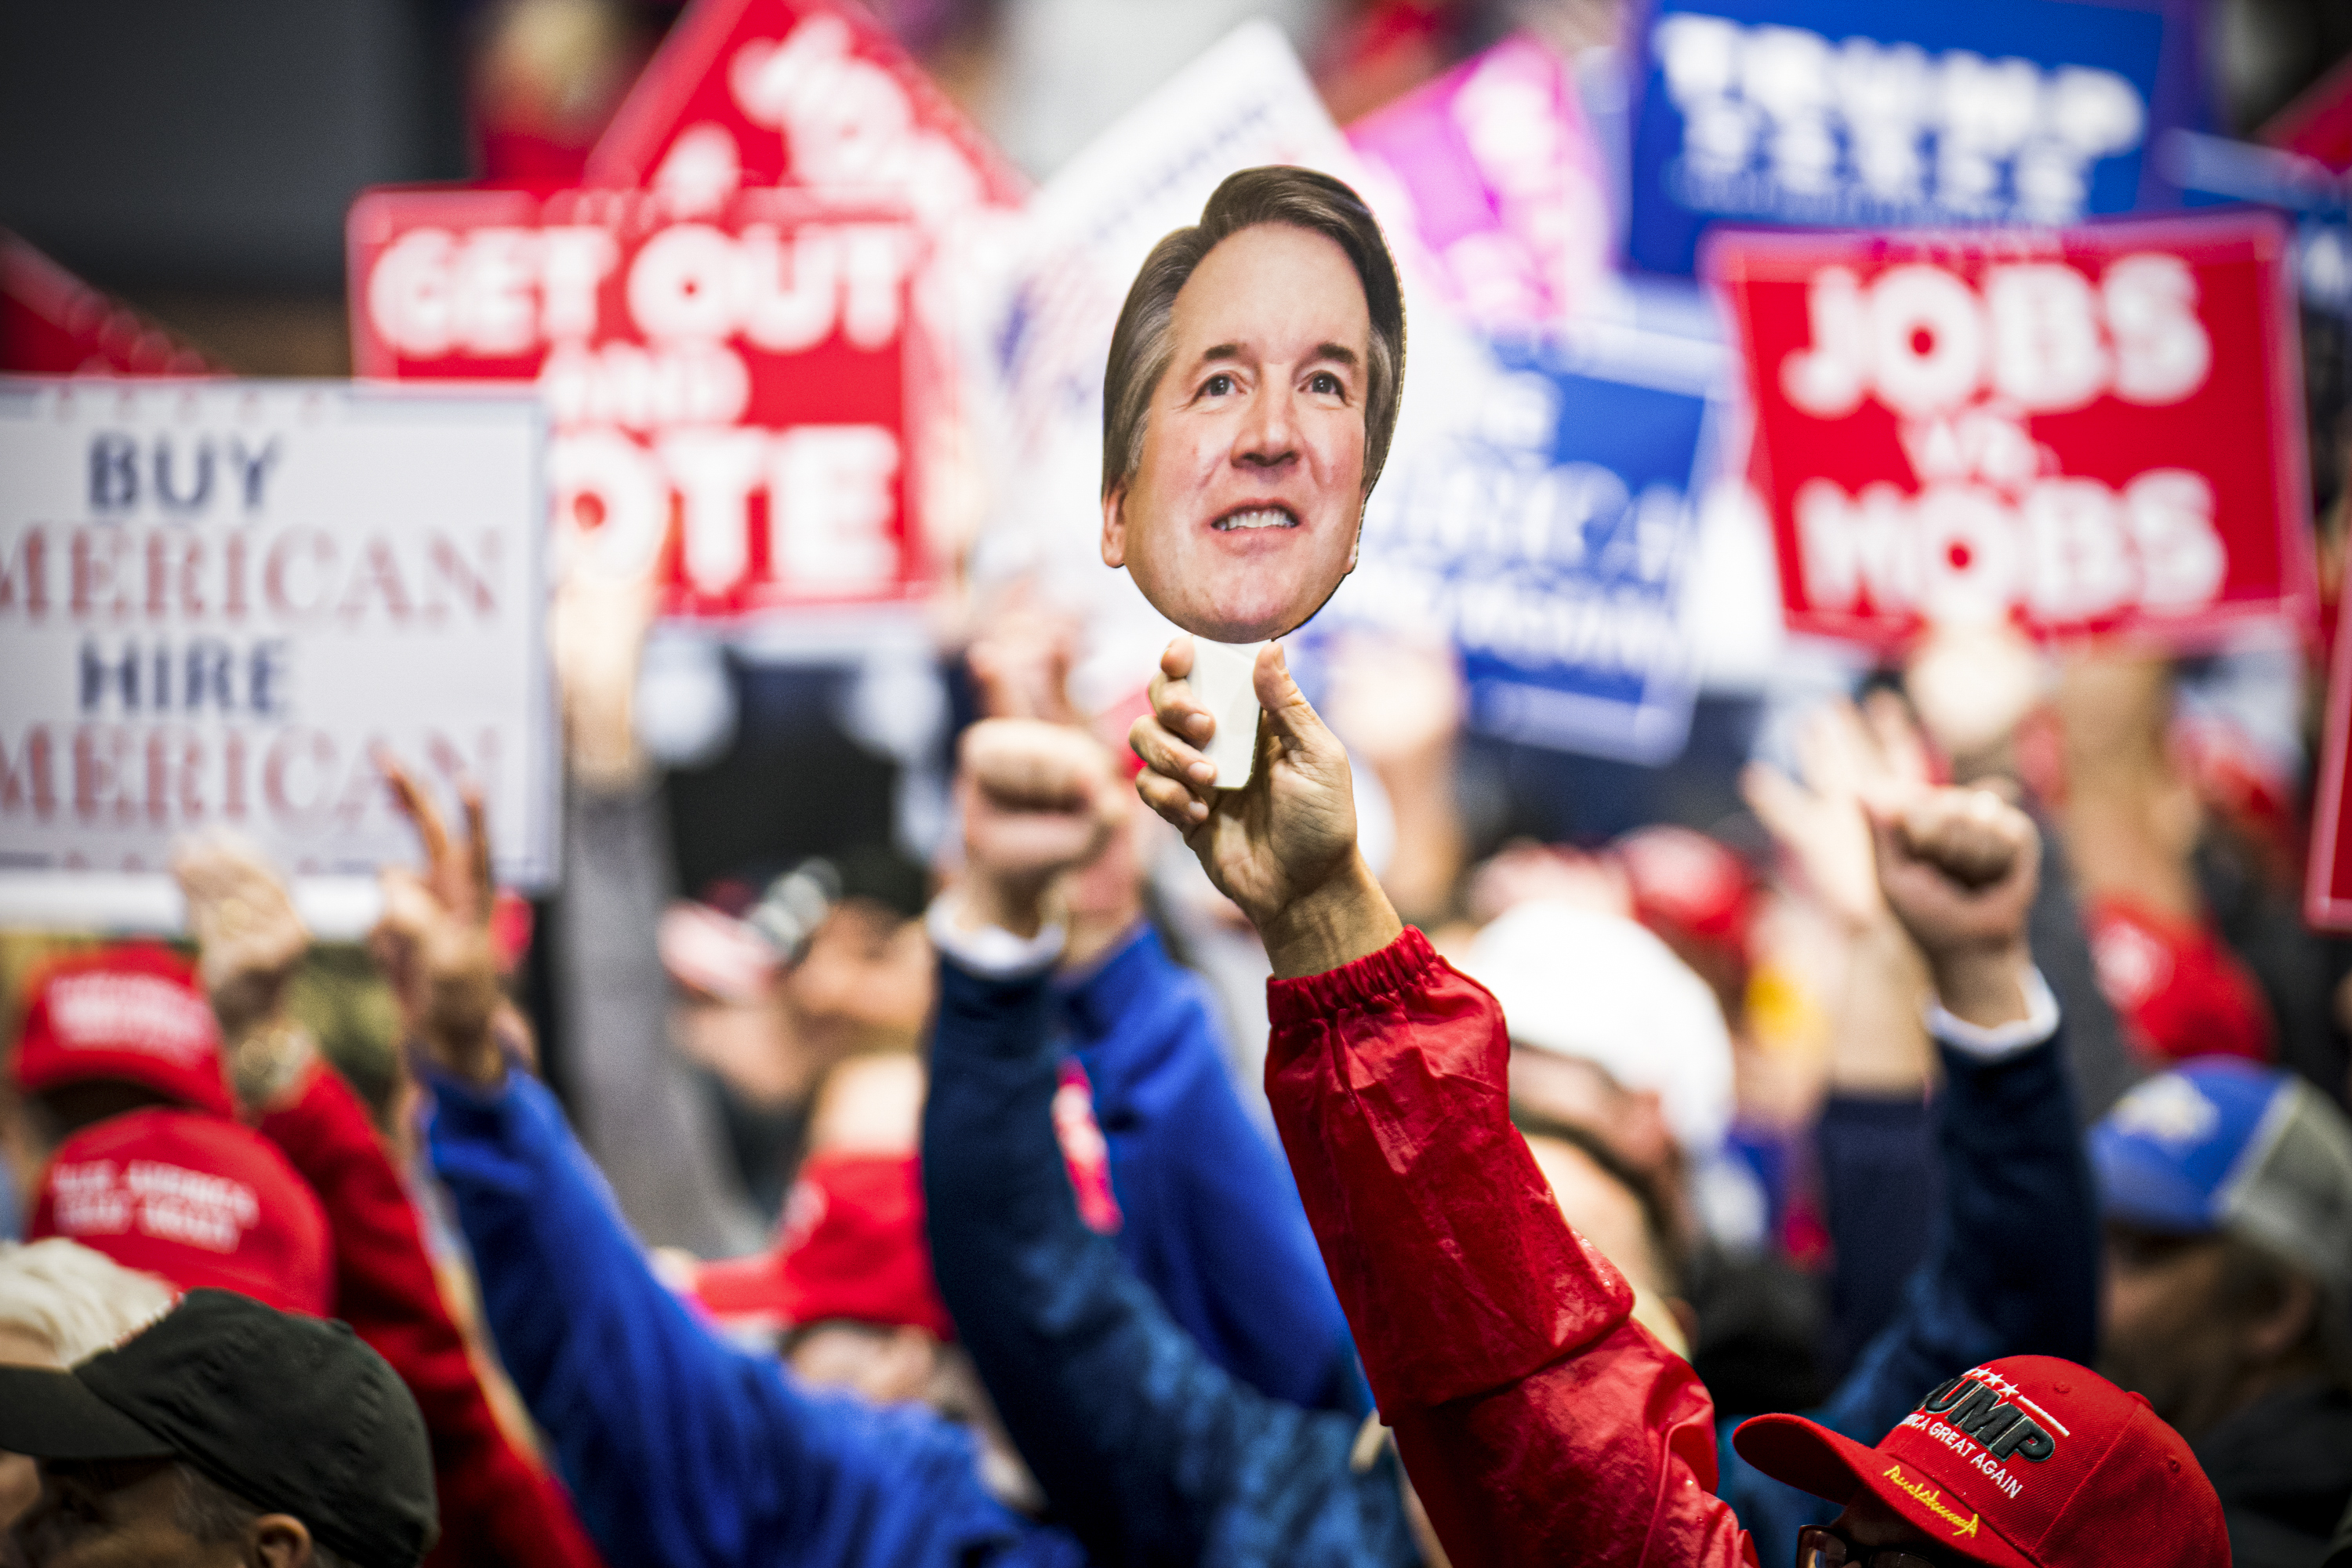 Defending Kavanaugh has become personal for conservatives, not ideological